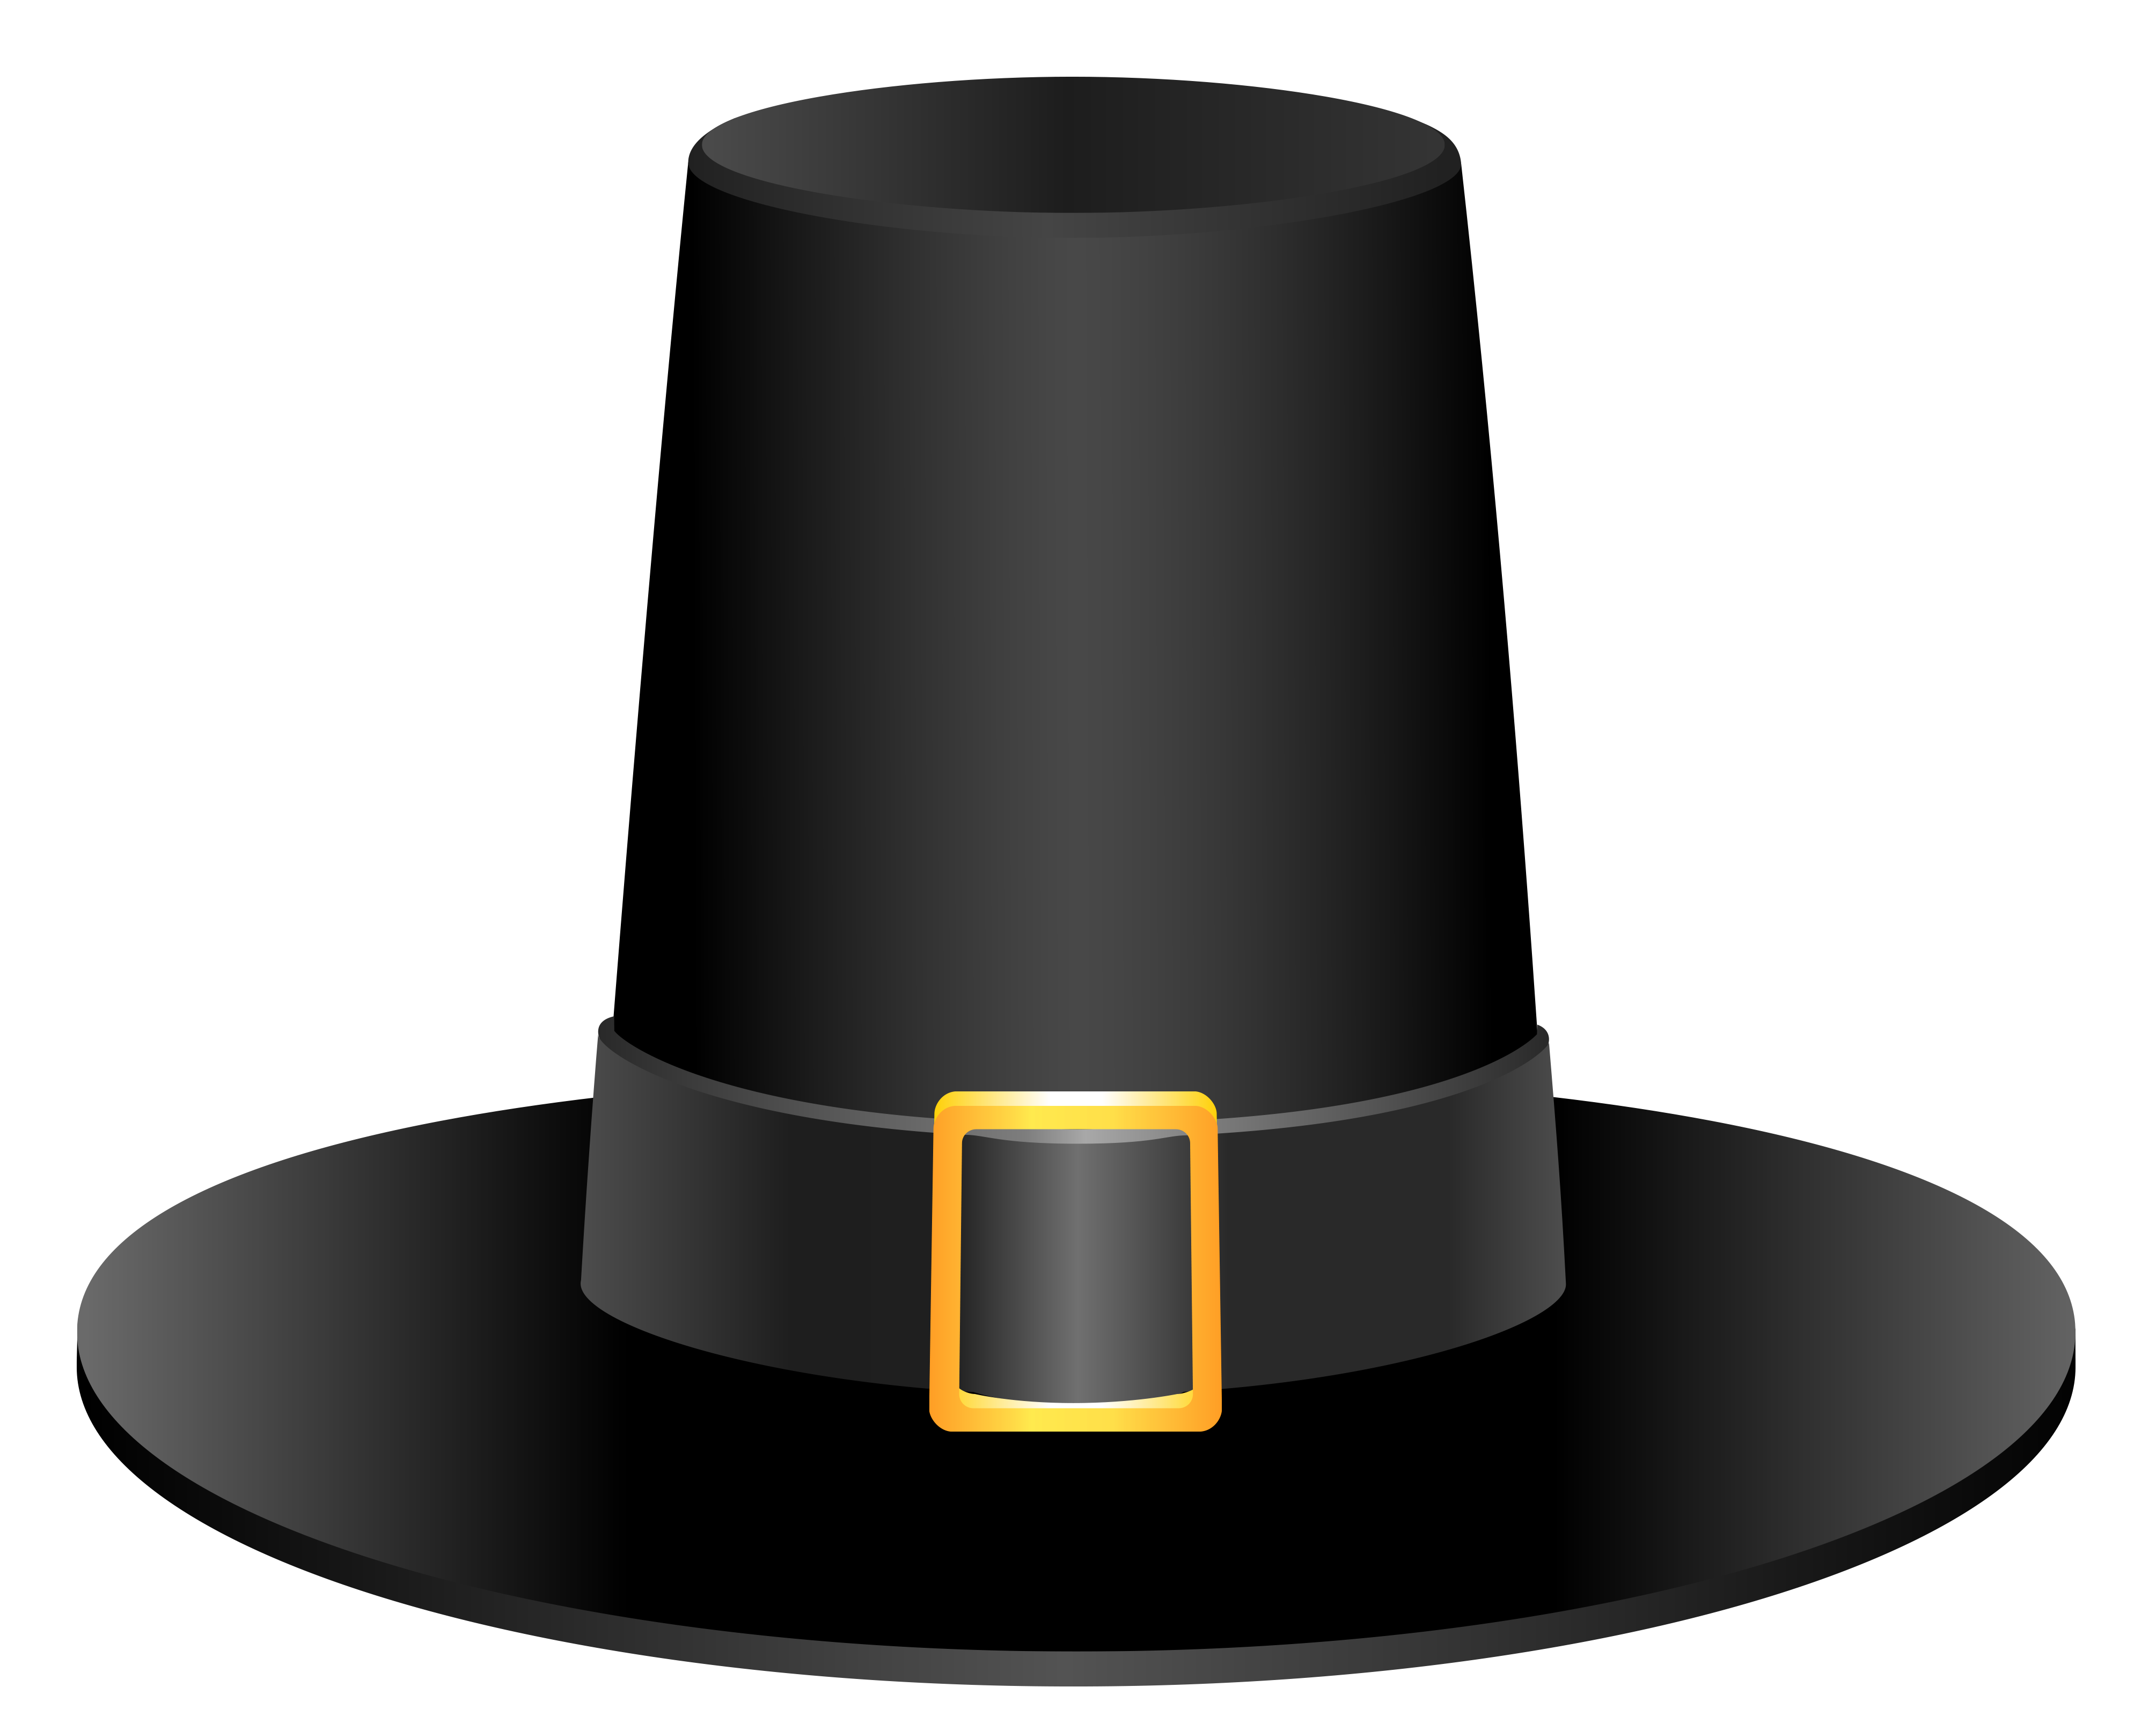 Pilgrim hat png. Black picture gallery yopriceville